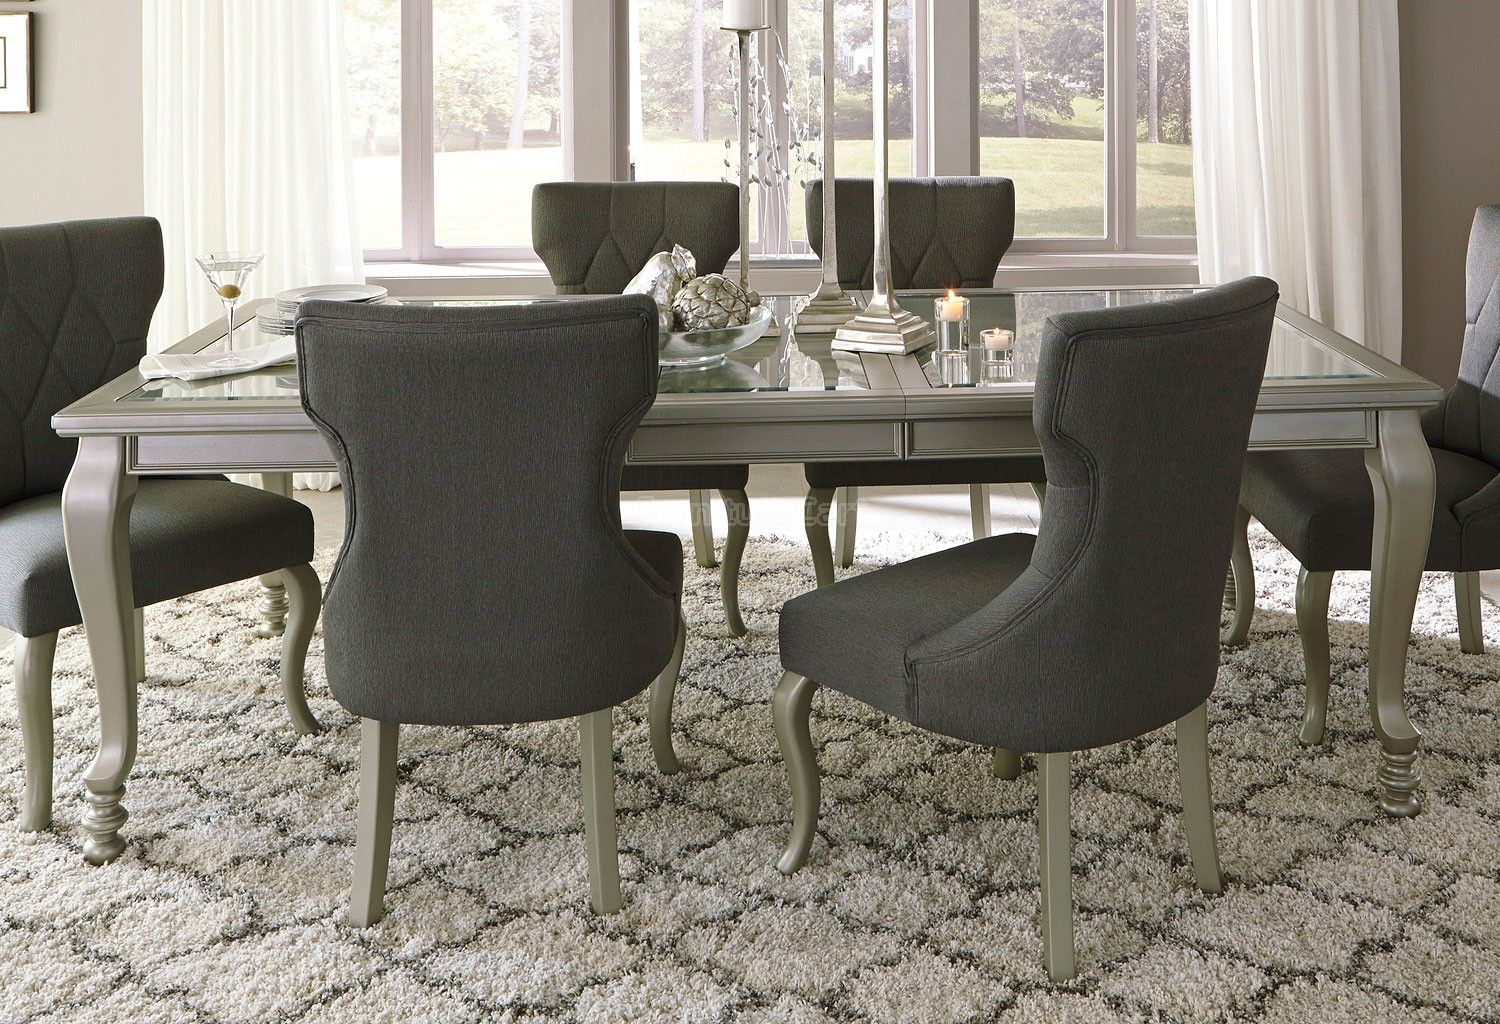 Coralayne Dining Table images